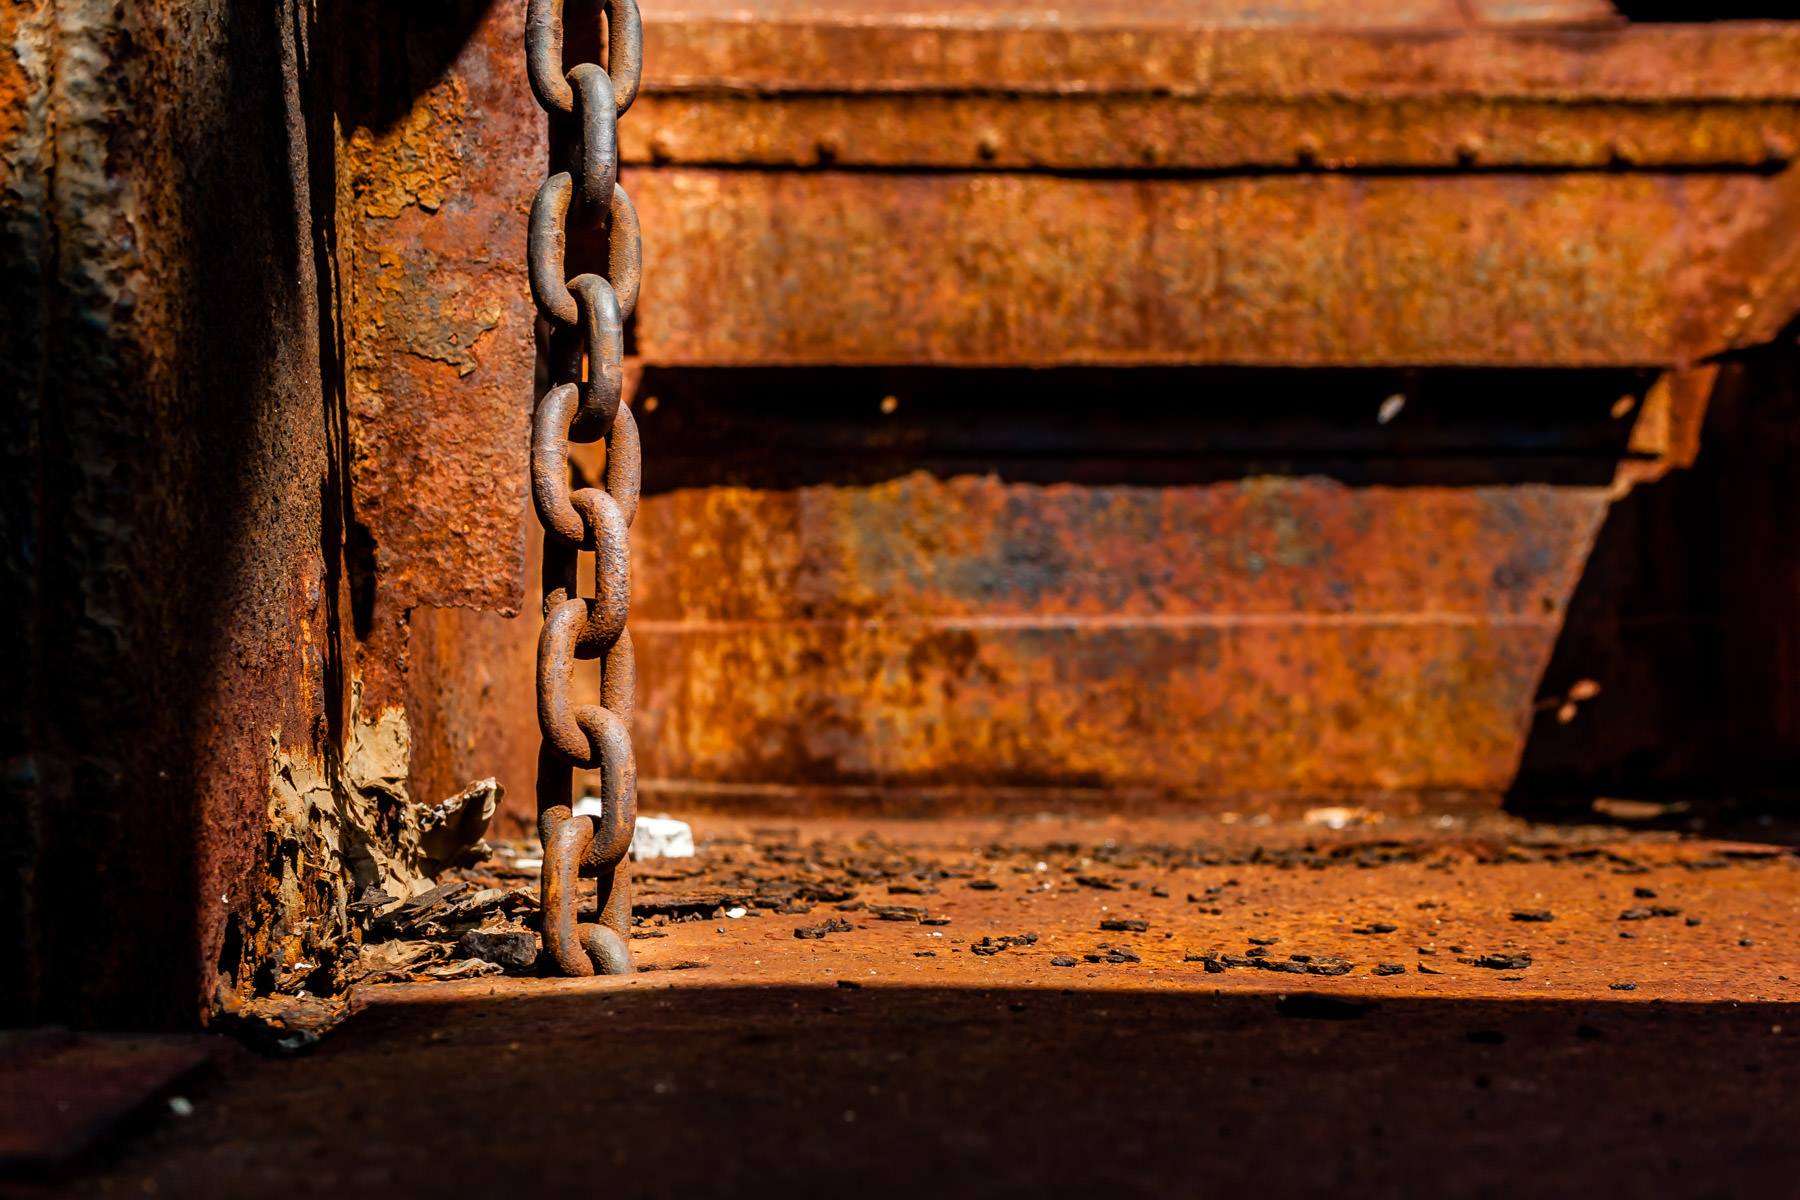 A chain in an abandoned rail car in Grapevine, Texas.